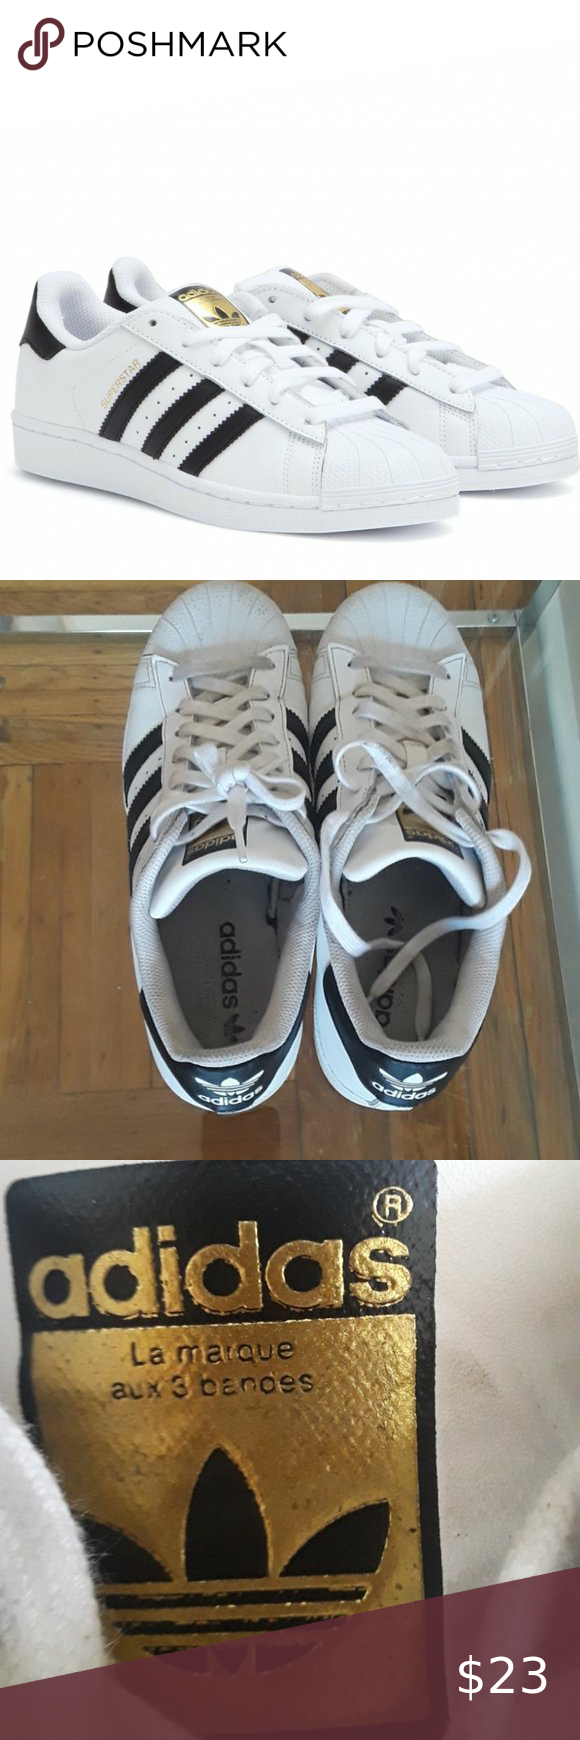 COPY - Adidas Superstar Leather Sneakers in White Casual shoes ...